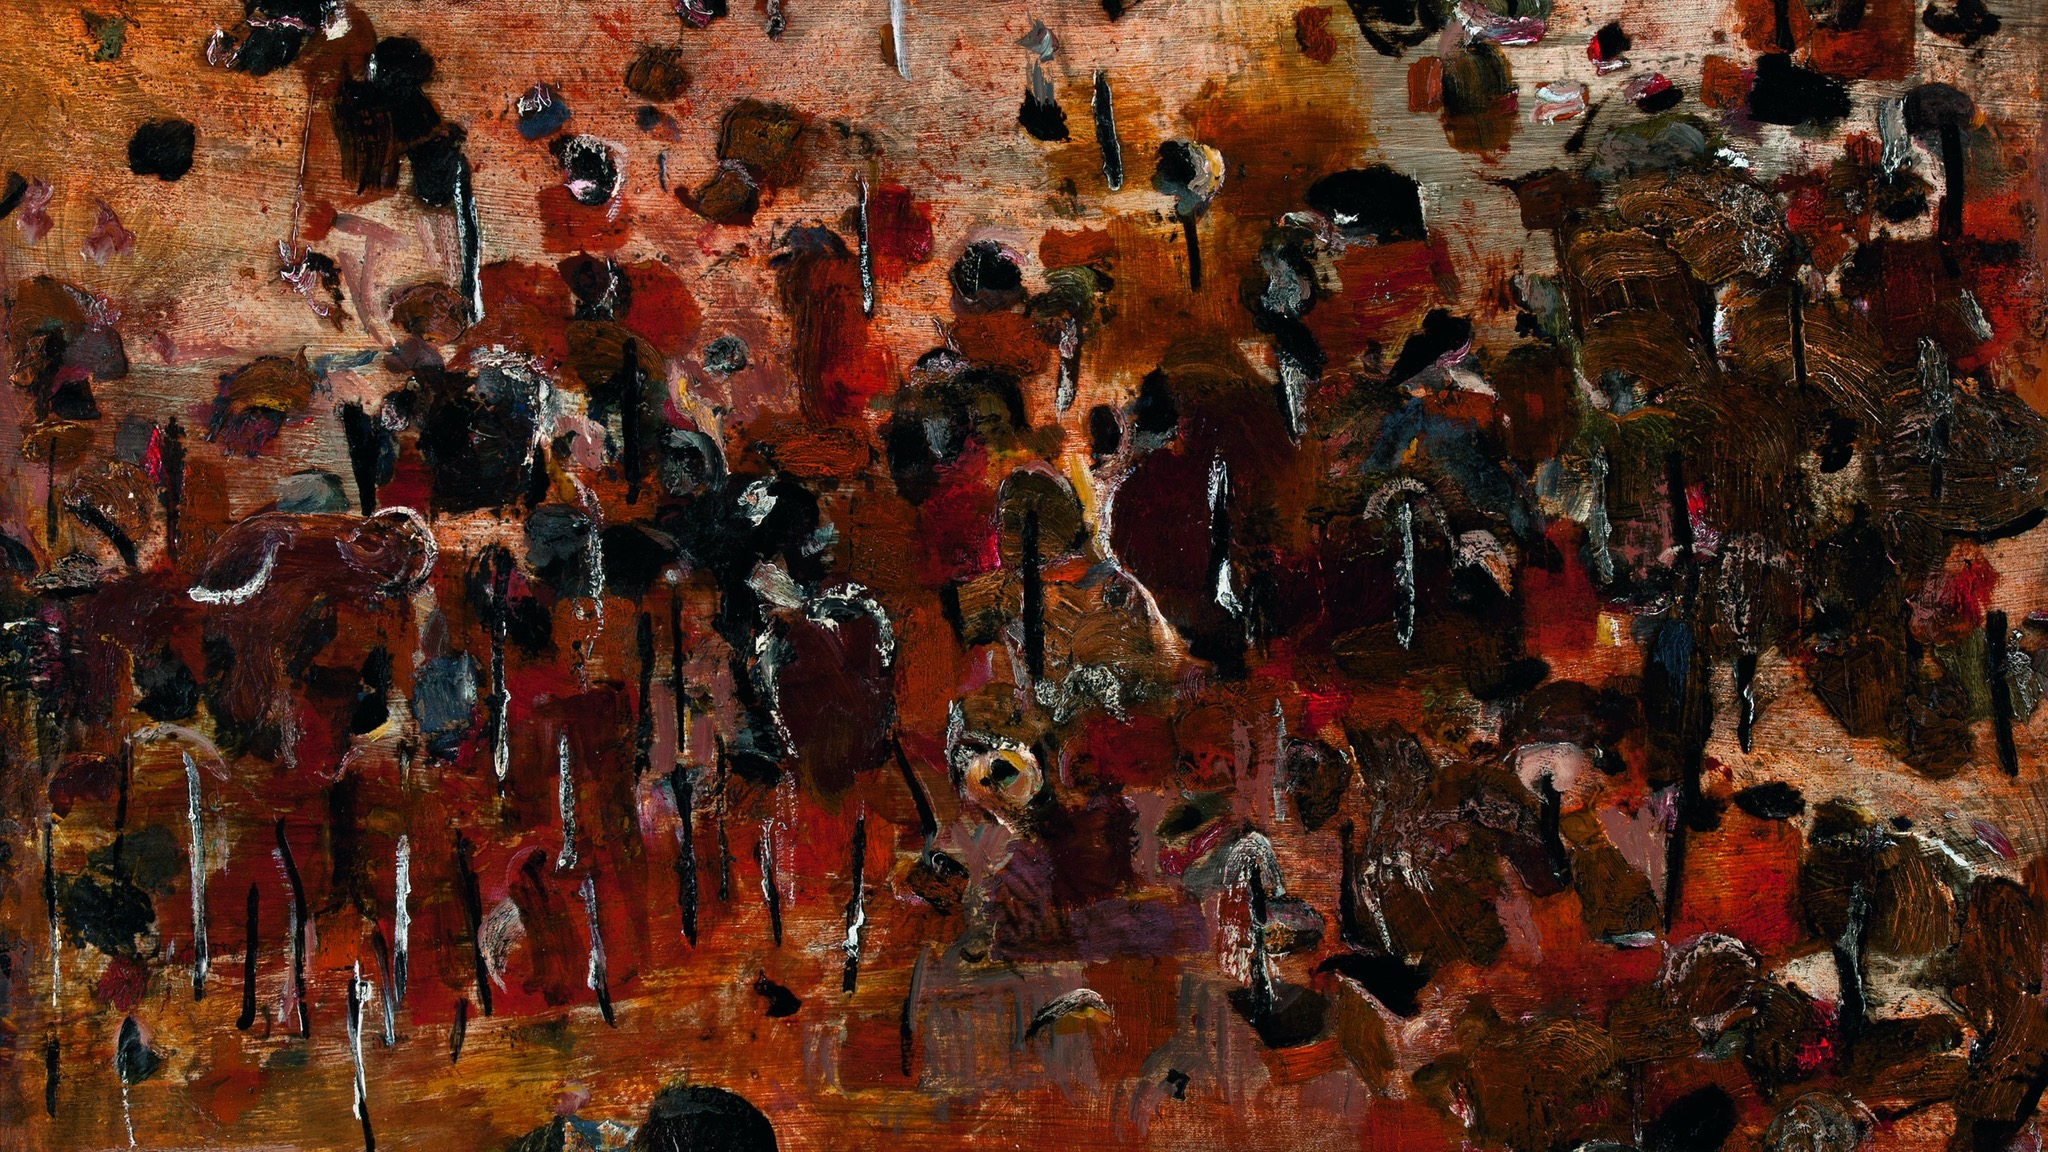 Fred Williams 'You Yang Pond' (detail) 1963. Art Gallery of South Australia